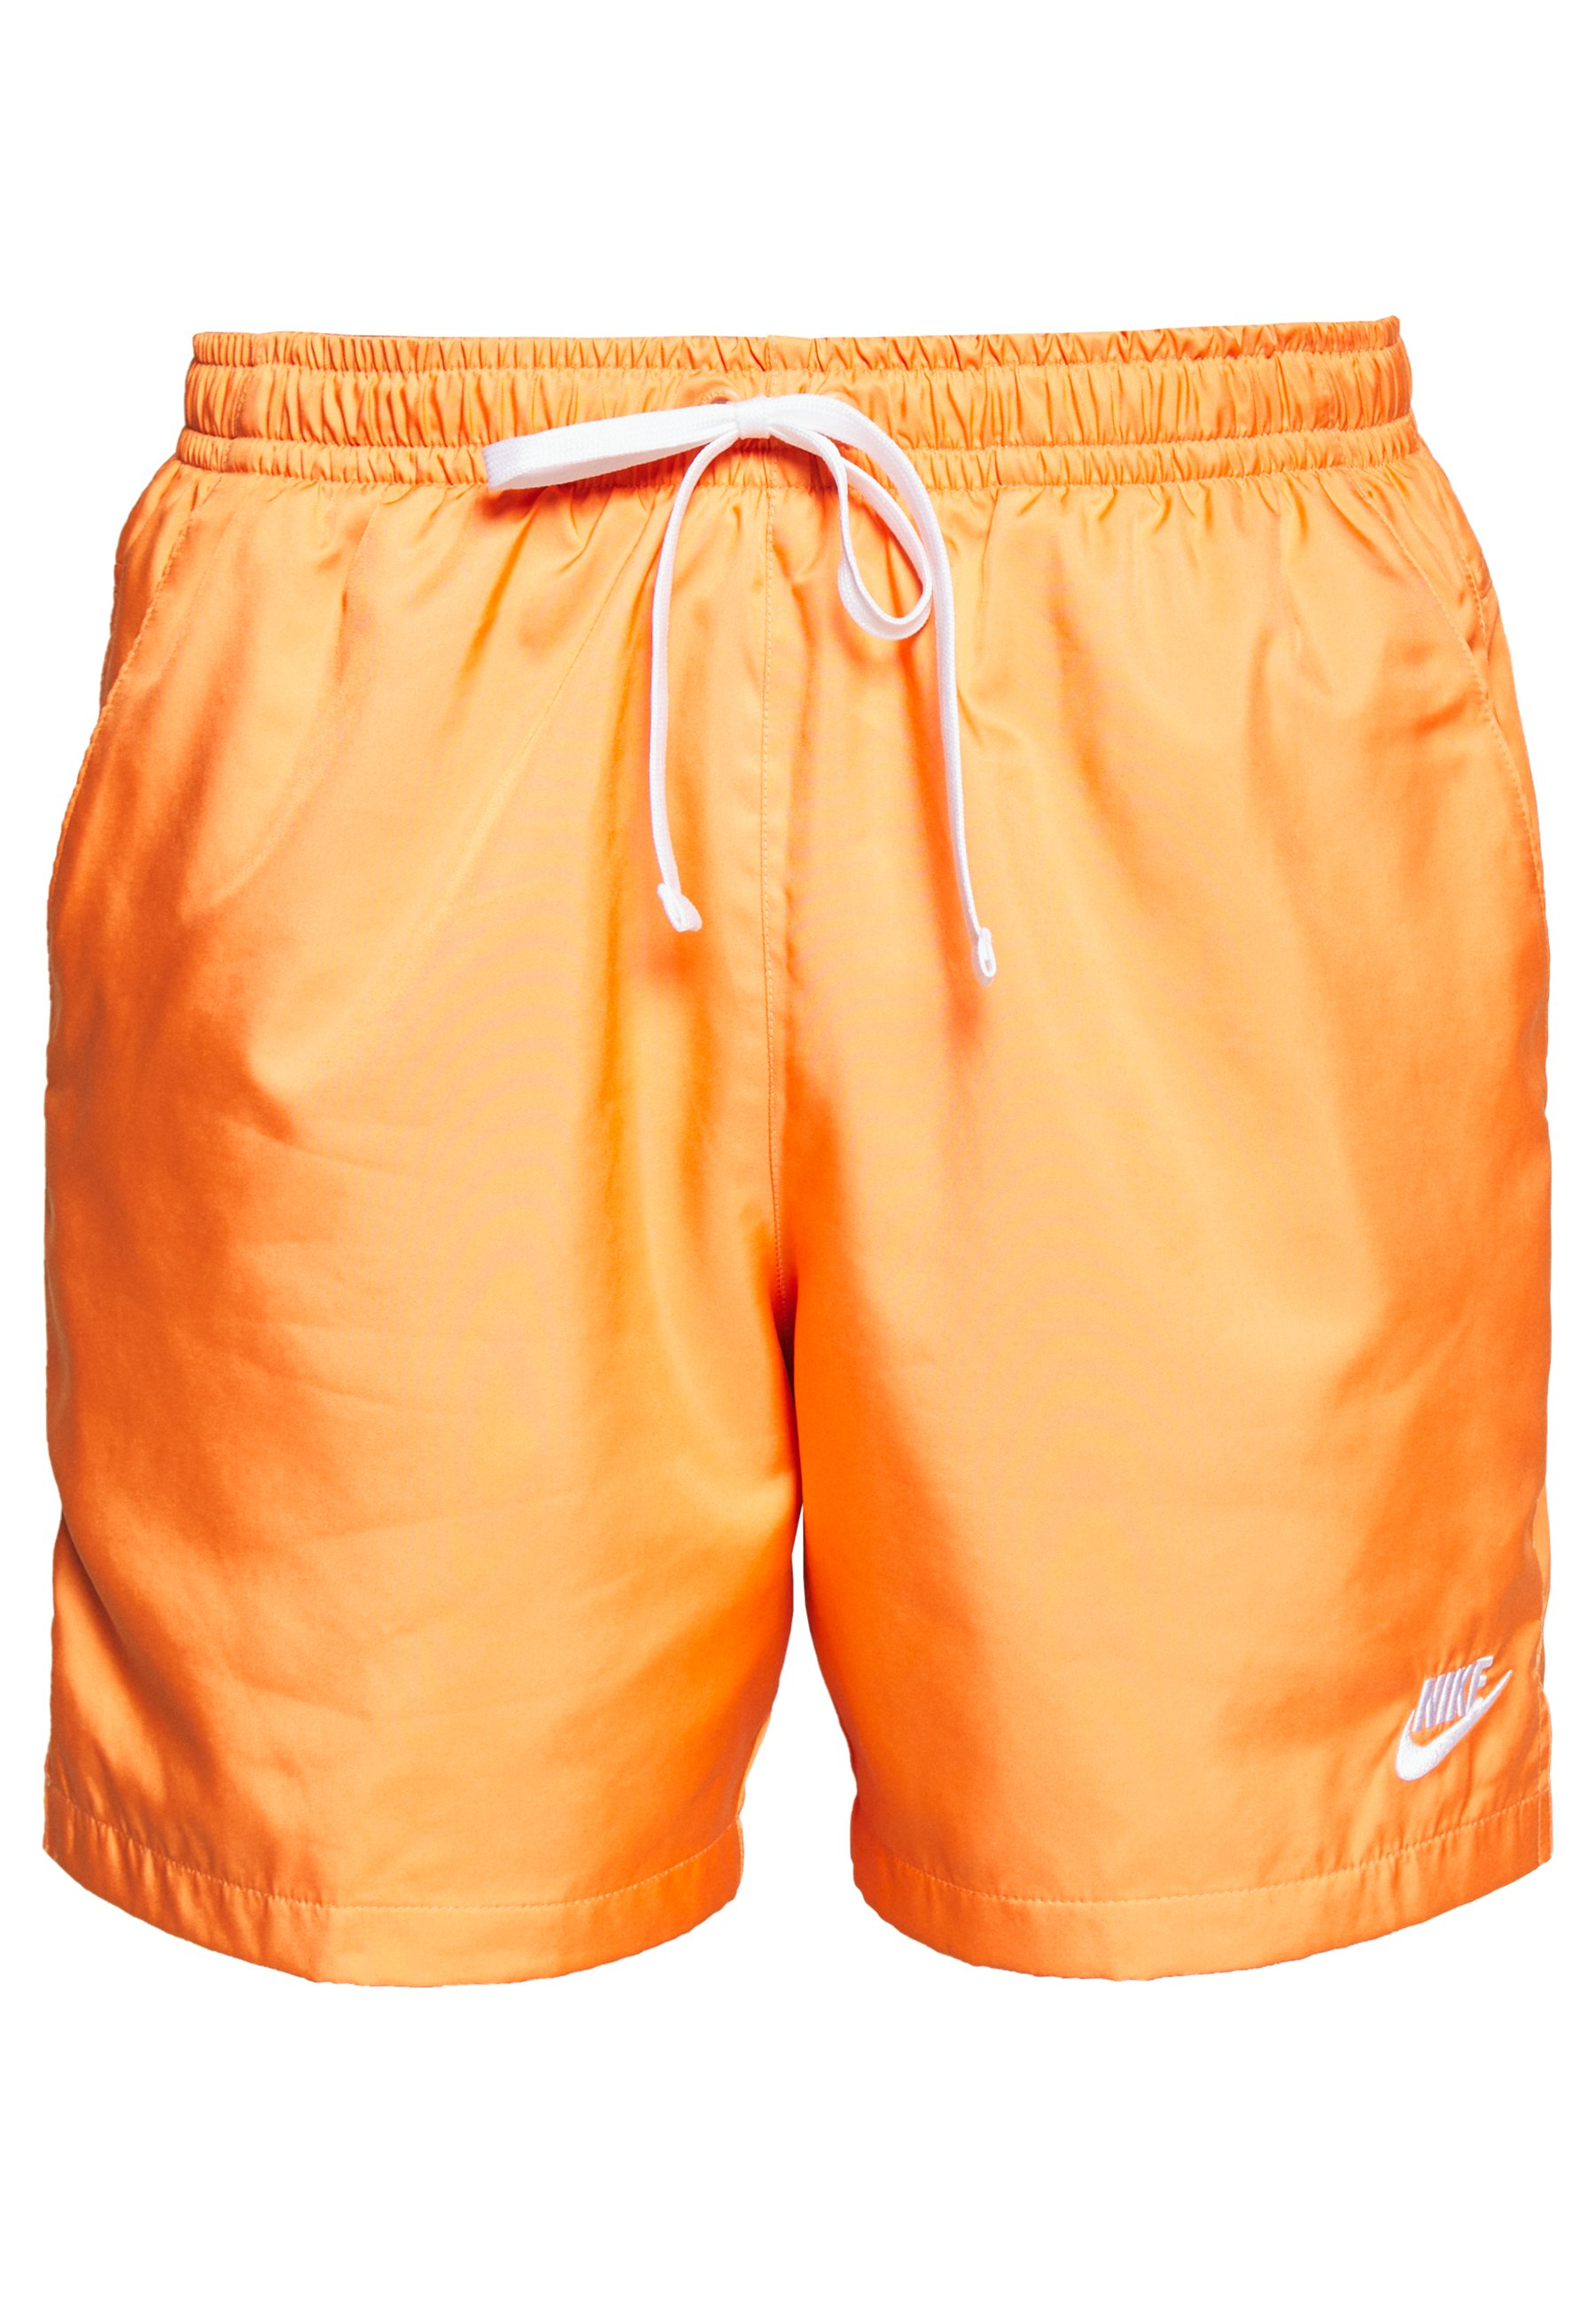 FLOW Short orange trance